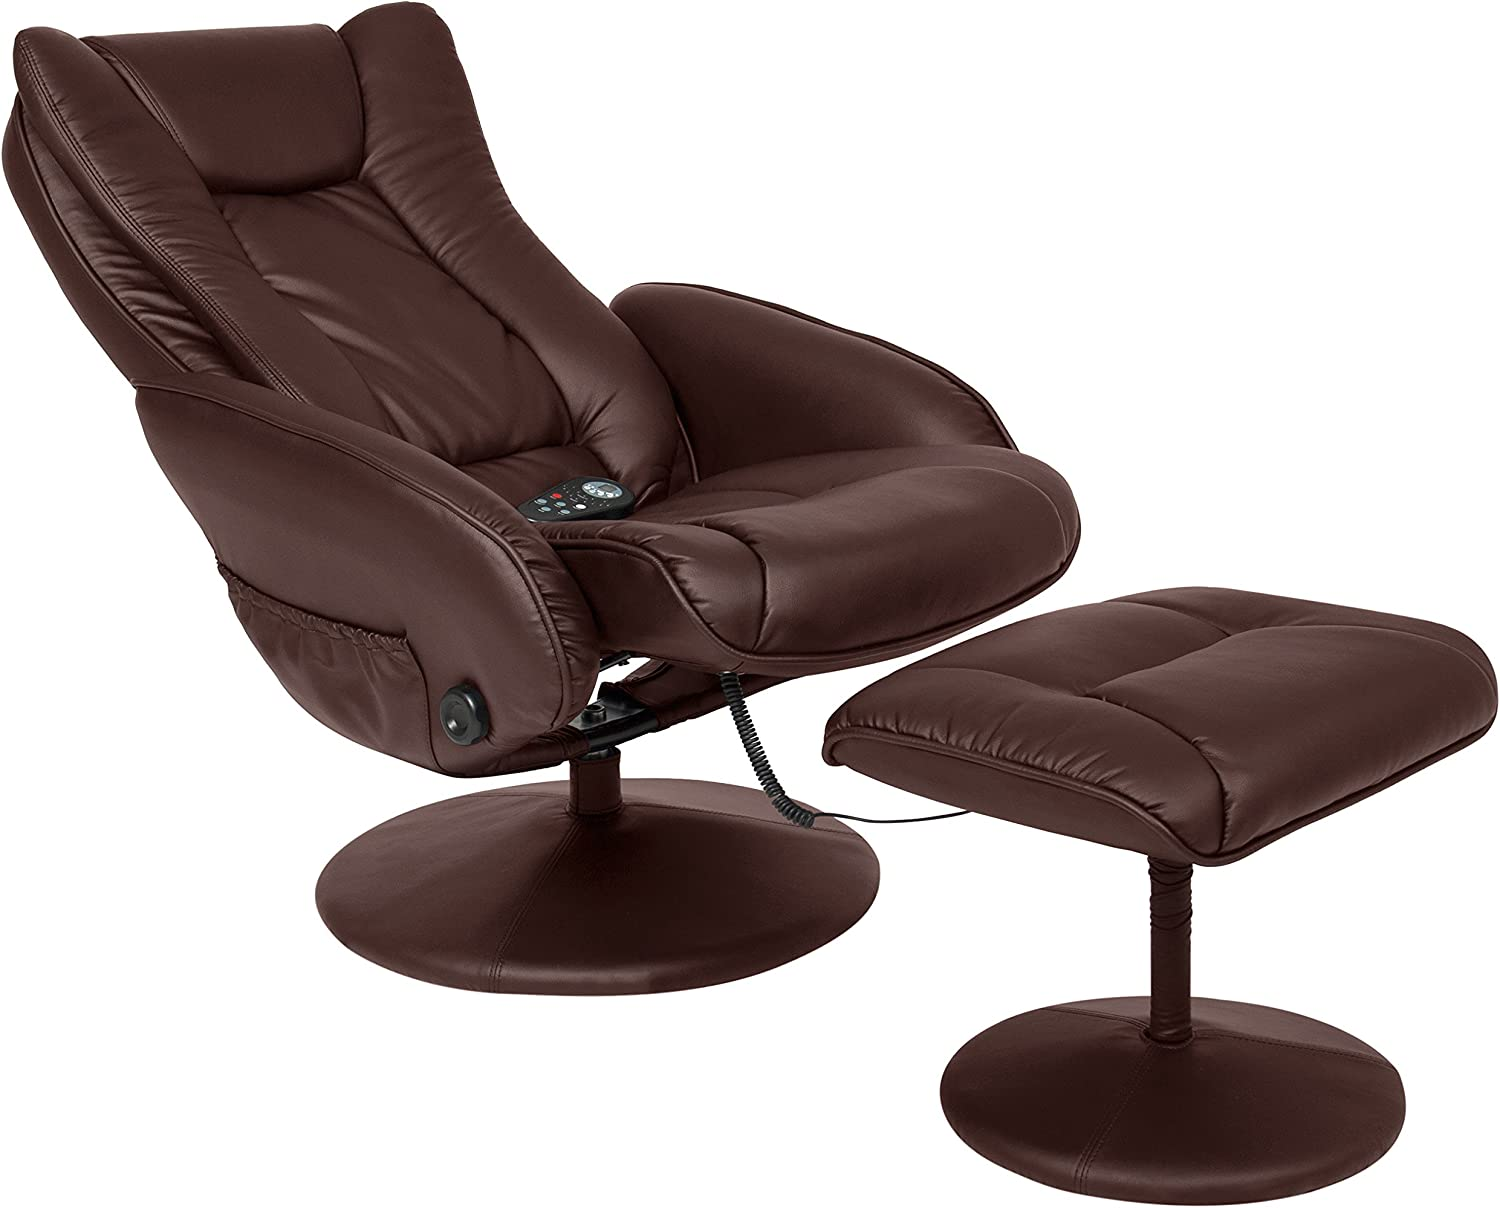 Best Choice Products Recliner Massage Chair reclined